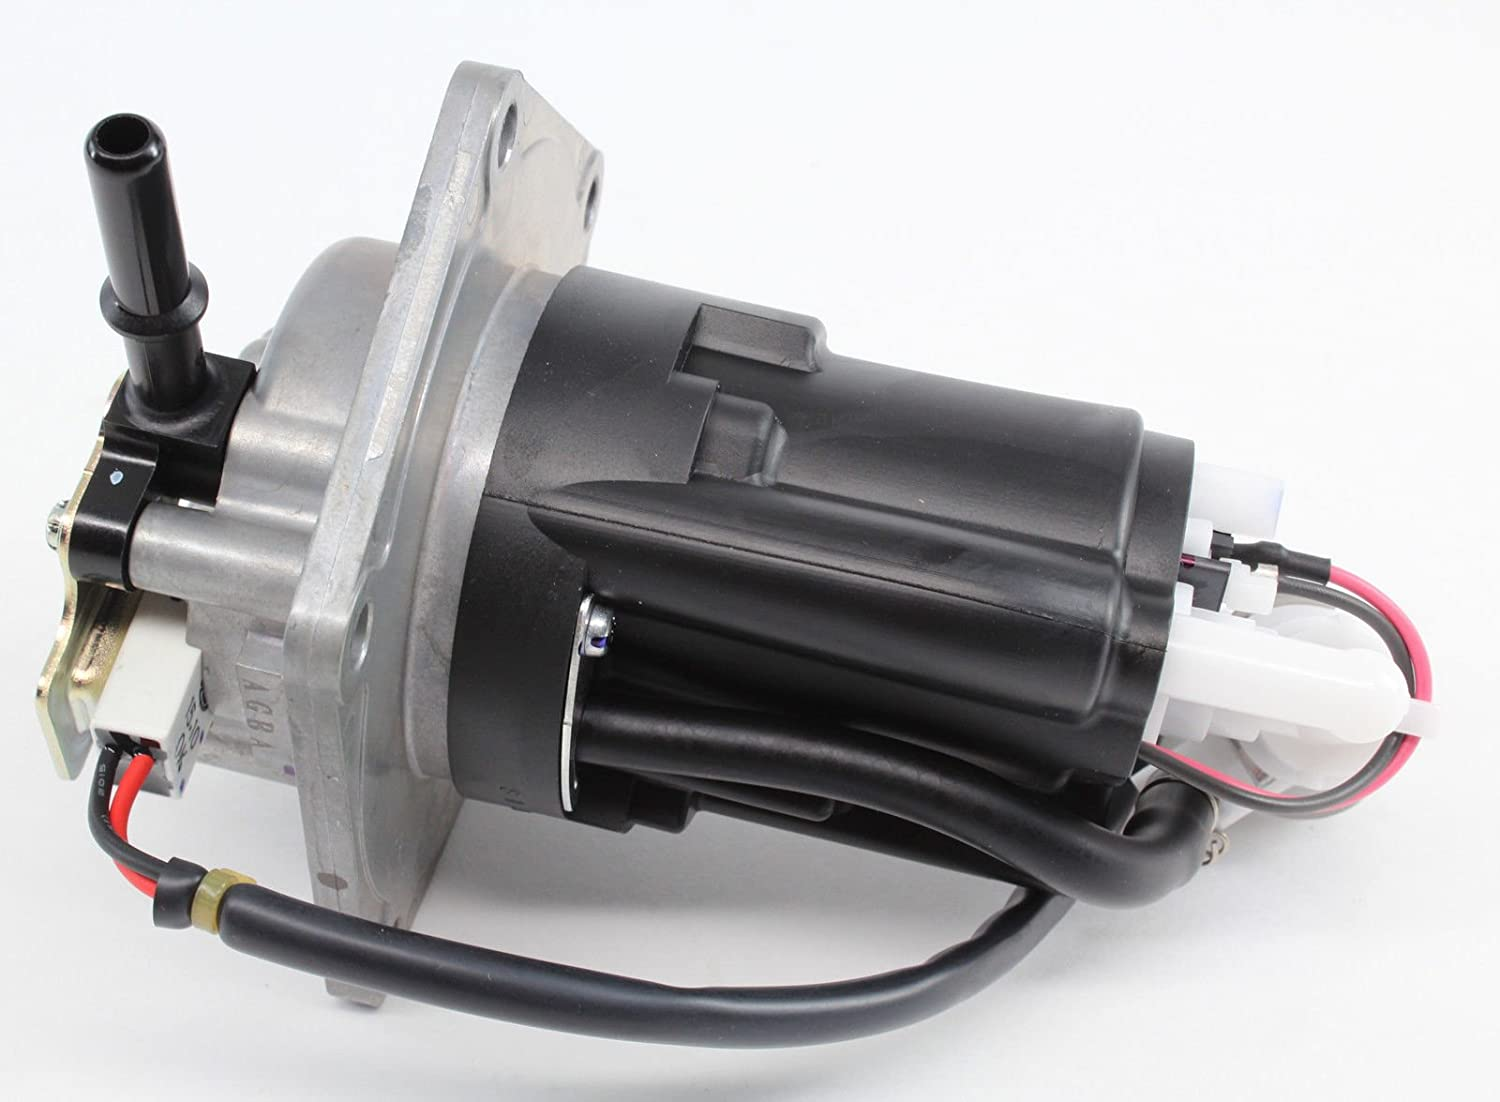 [SCHEMATICS_4FD]  Amazon.com: Kawasaki 2009-2011 Kx450f Kx250f Pump Fuel 49040-0037 New Oem:  Automotive | Kx450f Fuel Filter |  | Amazon.com